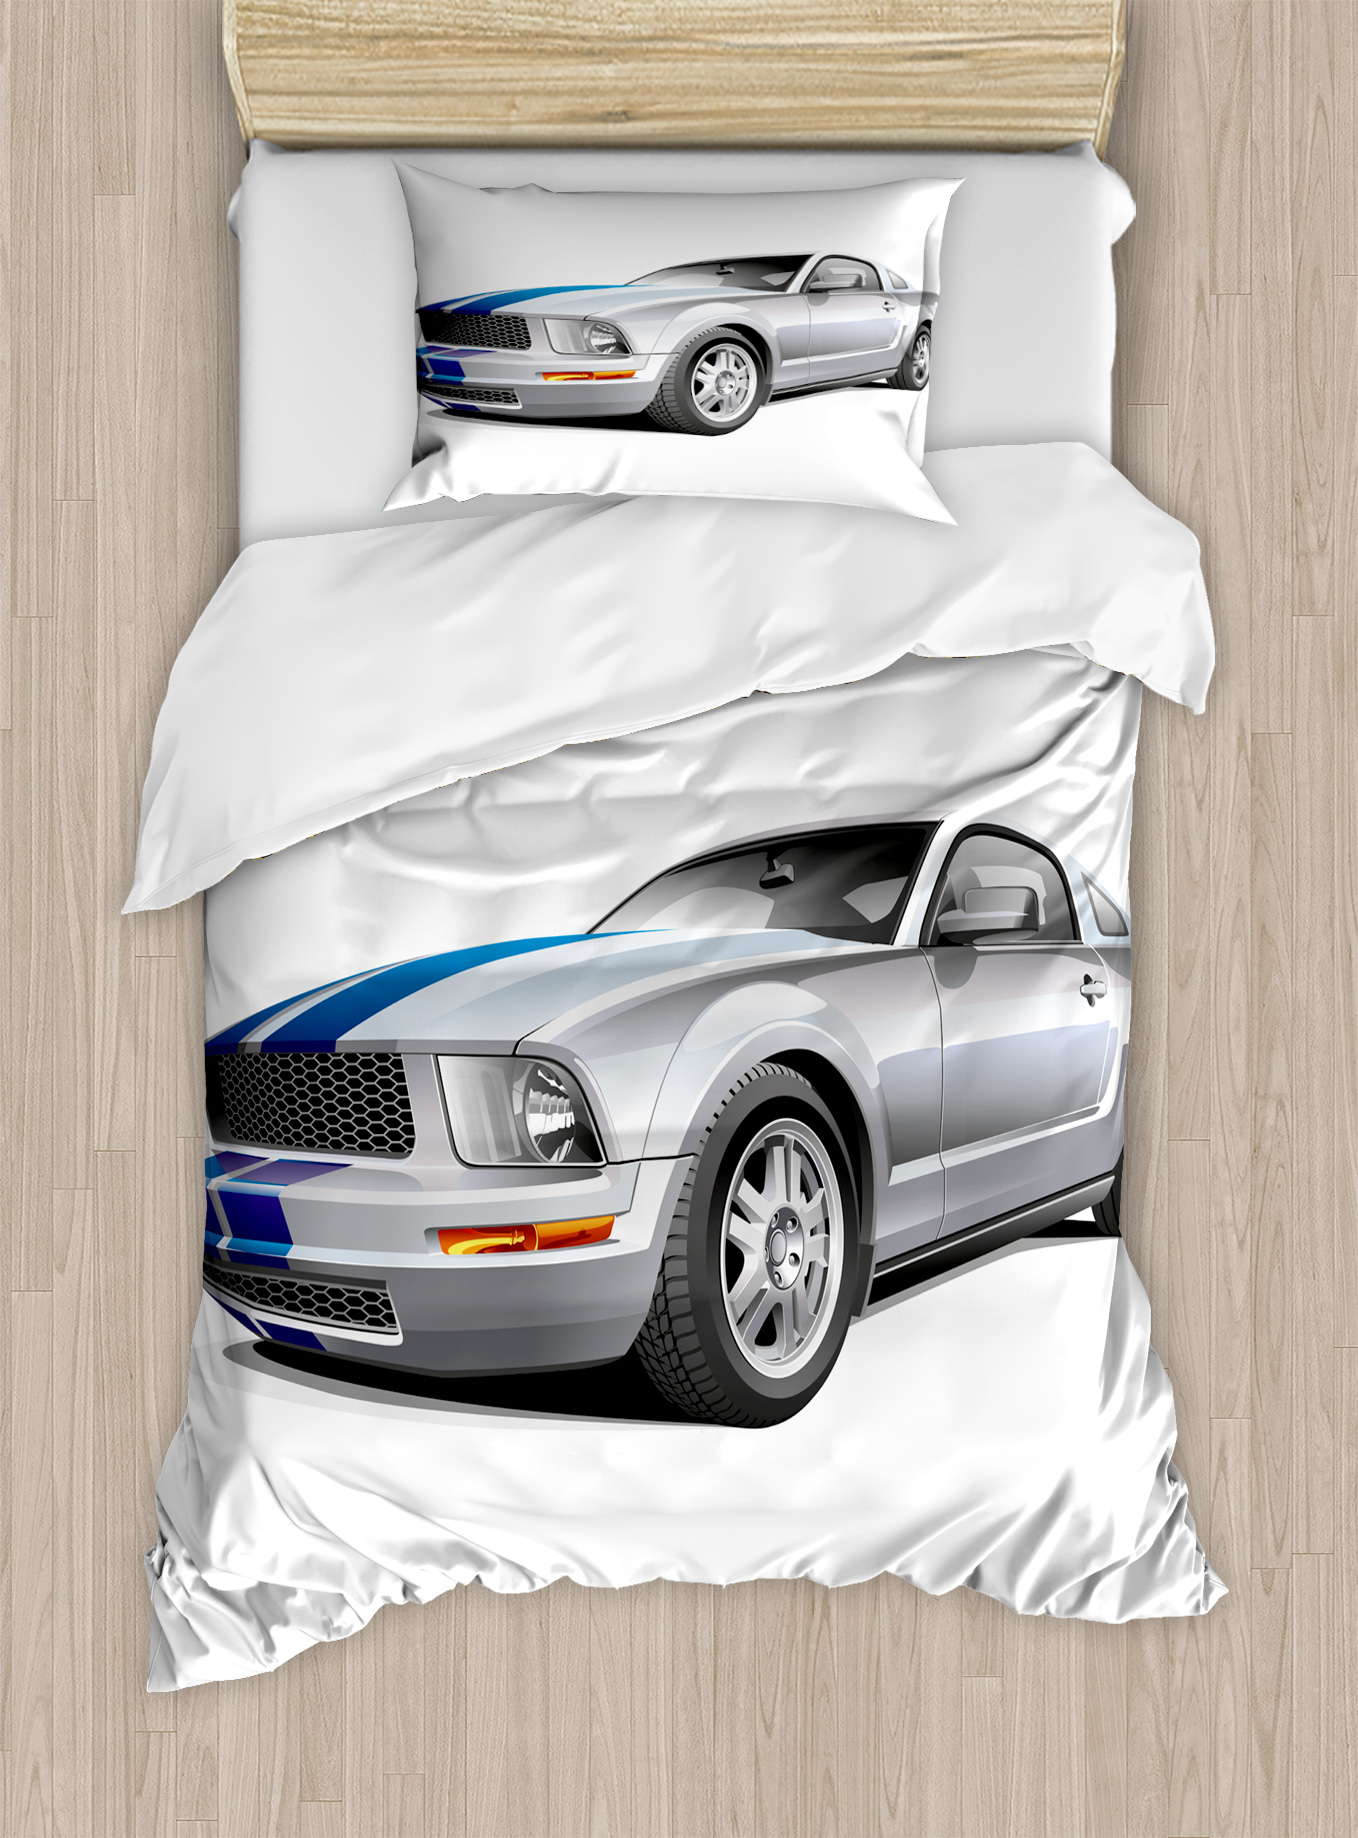 Teen Room Decor Twin Size Duvet Cover Set, Modern Trendy Cool Car  Automobile Fancy Speed